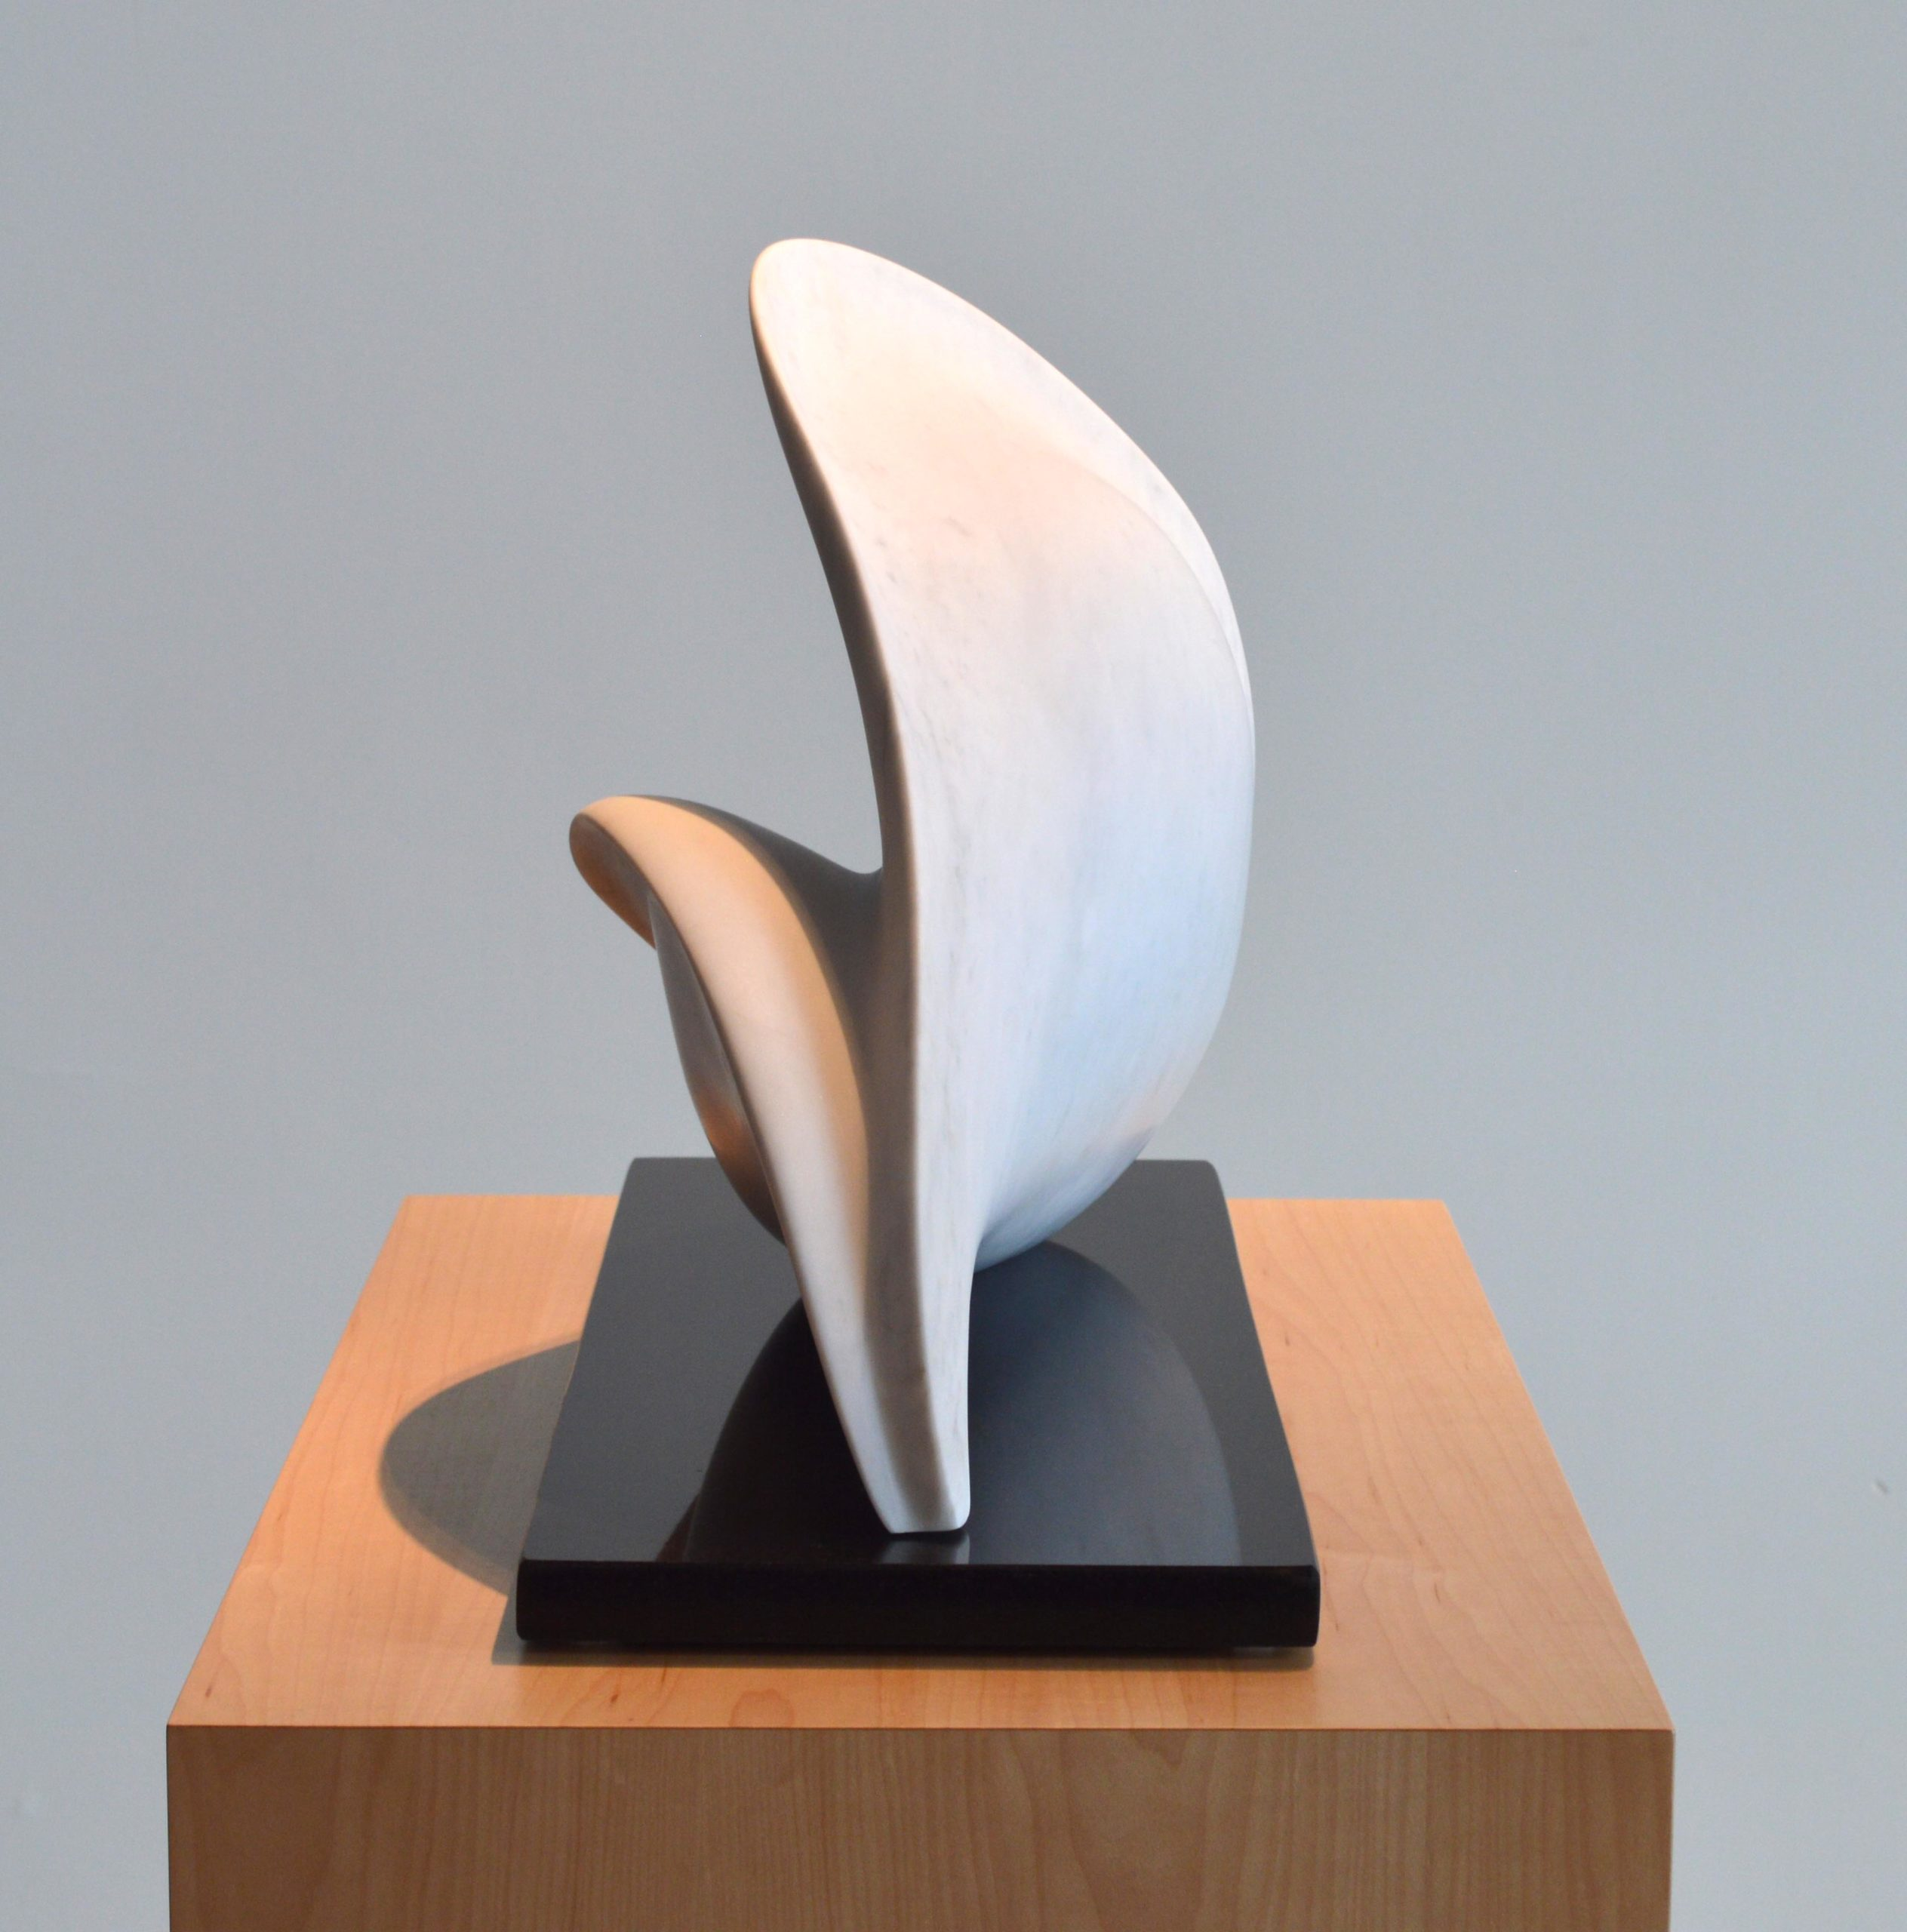 michael binkley sculptor stone sculpture abstract carrara marble vancouver canada